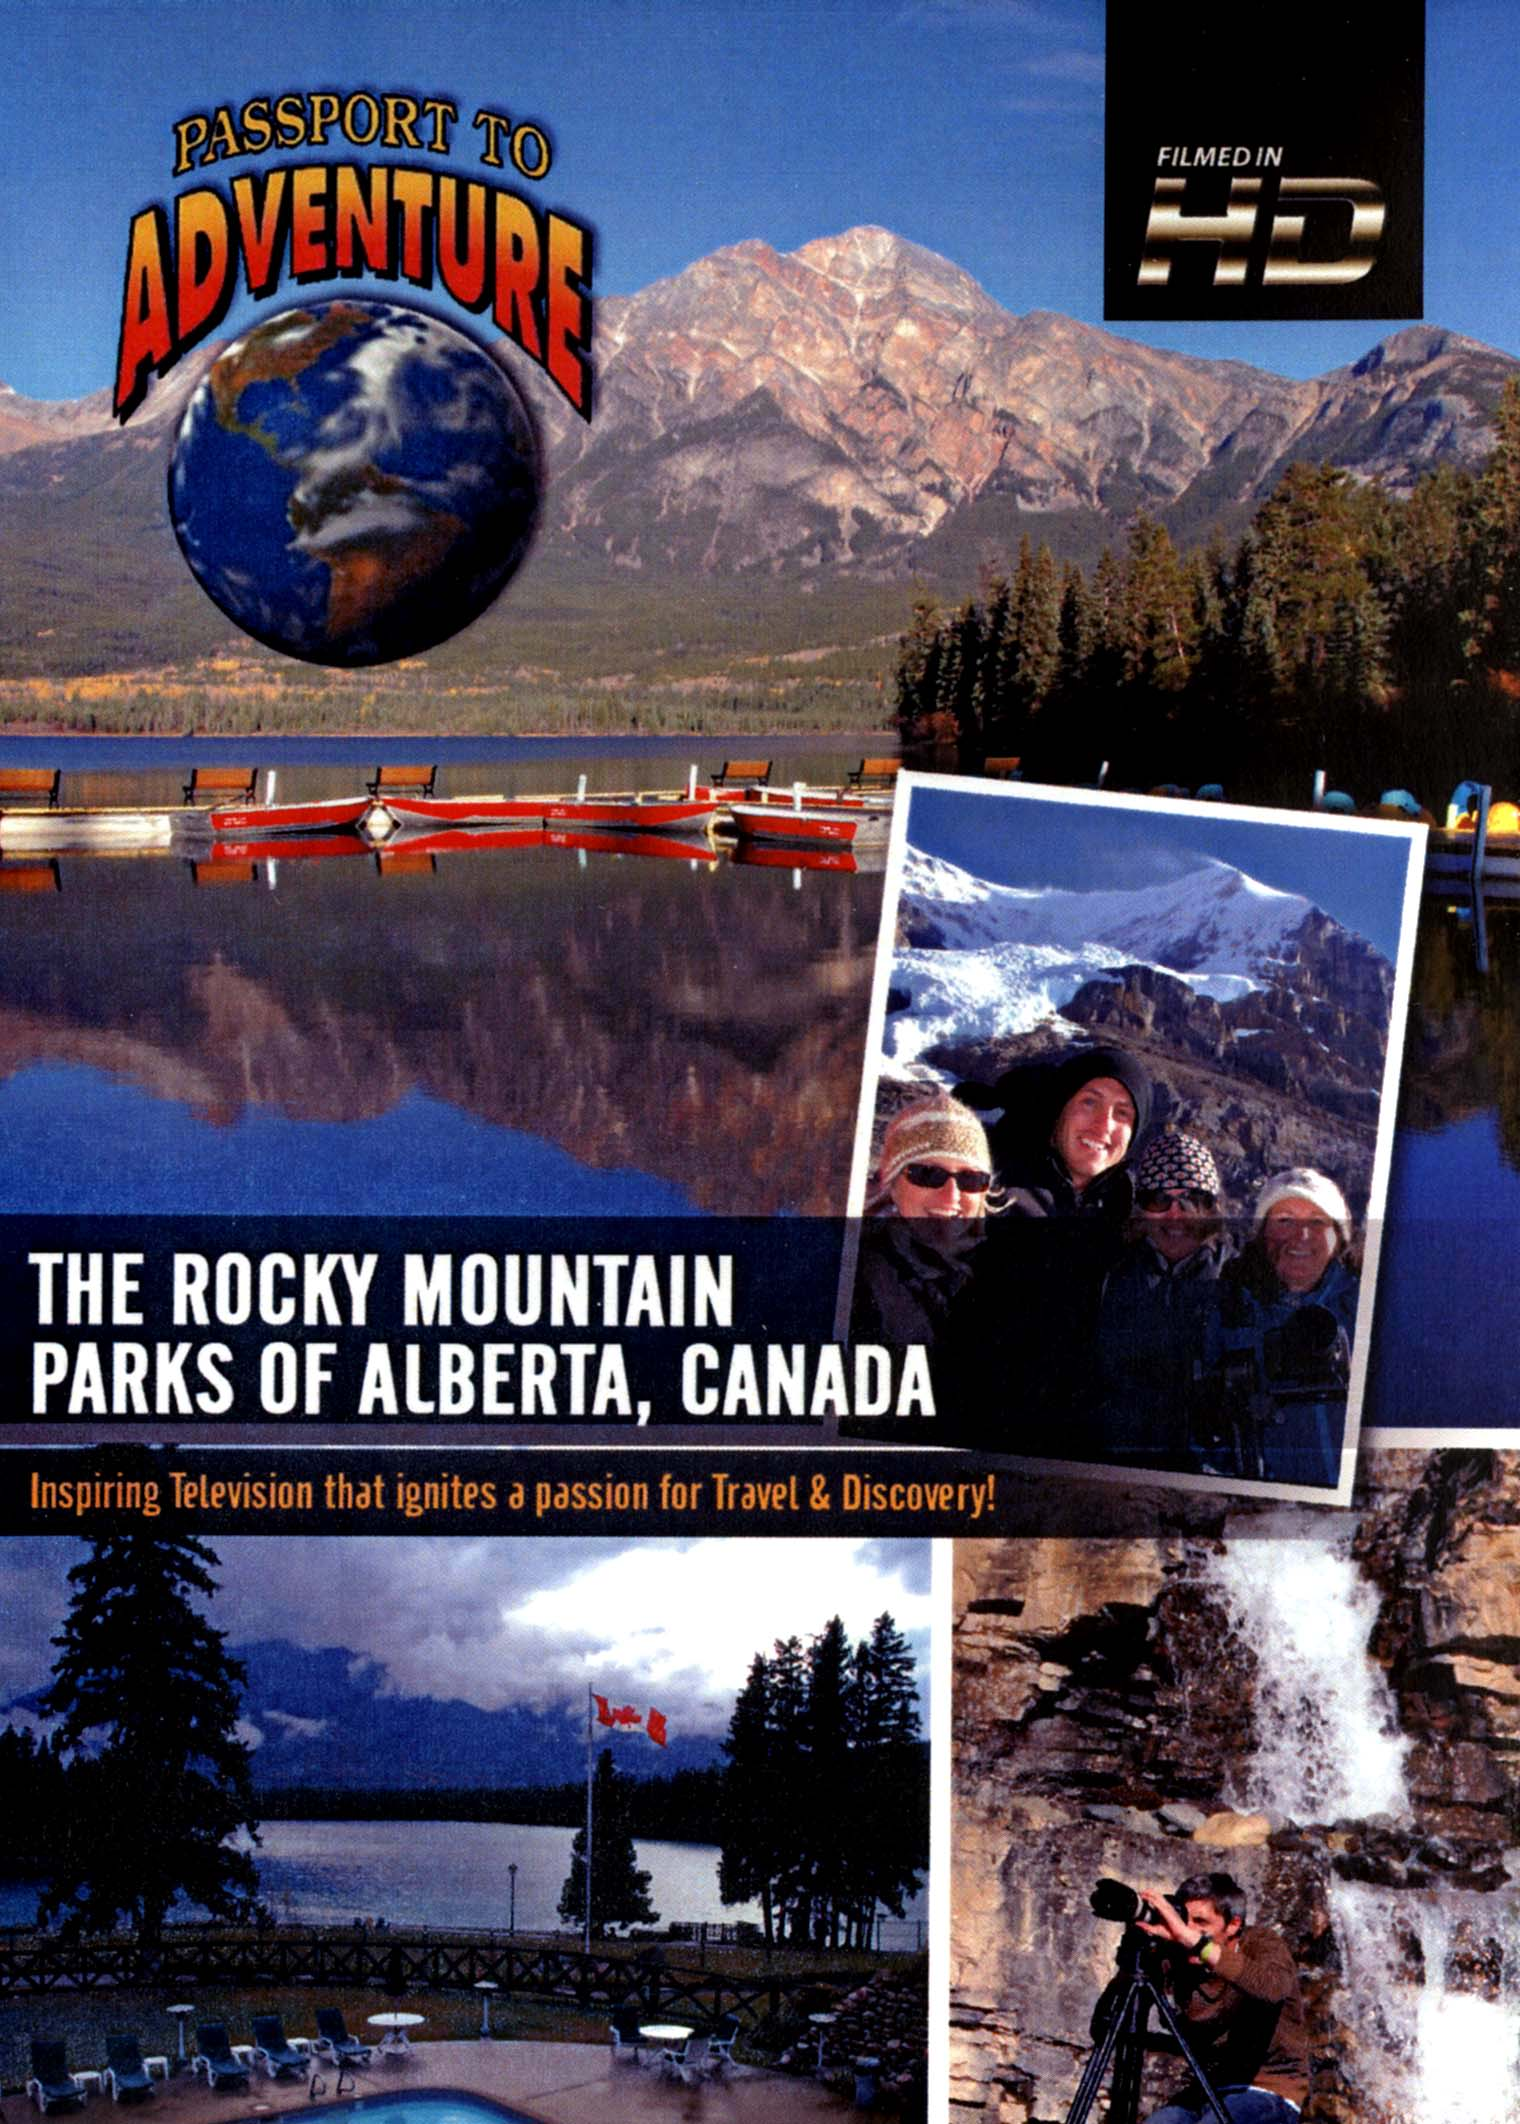 Passport to Adventure: The Rocky Mountain Parks of Alberta, Canada